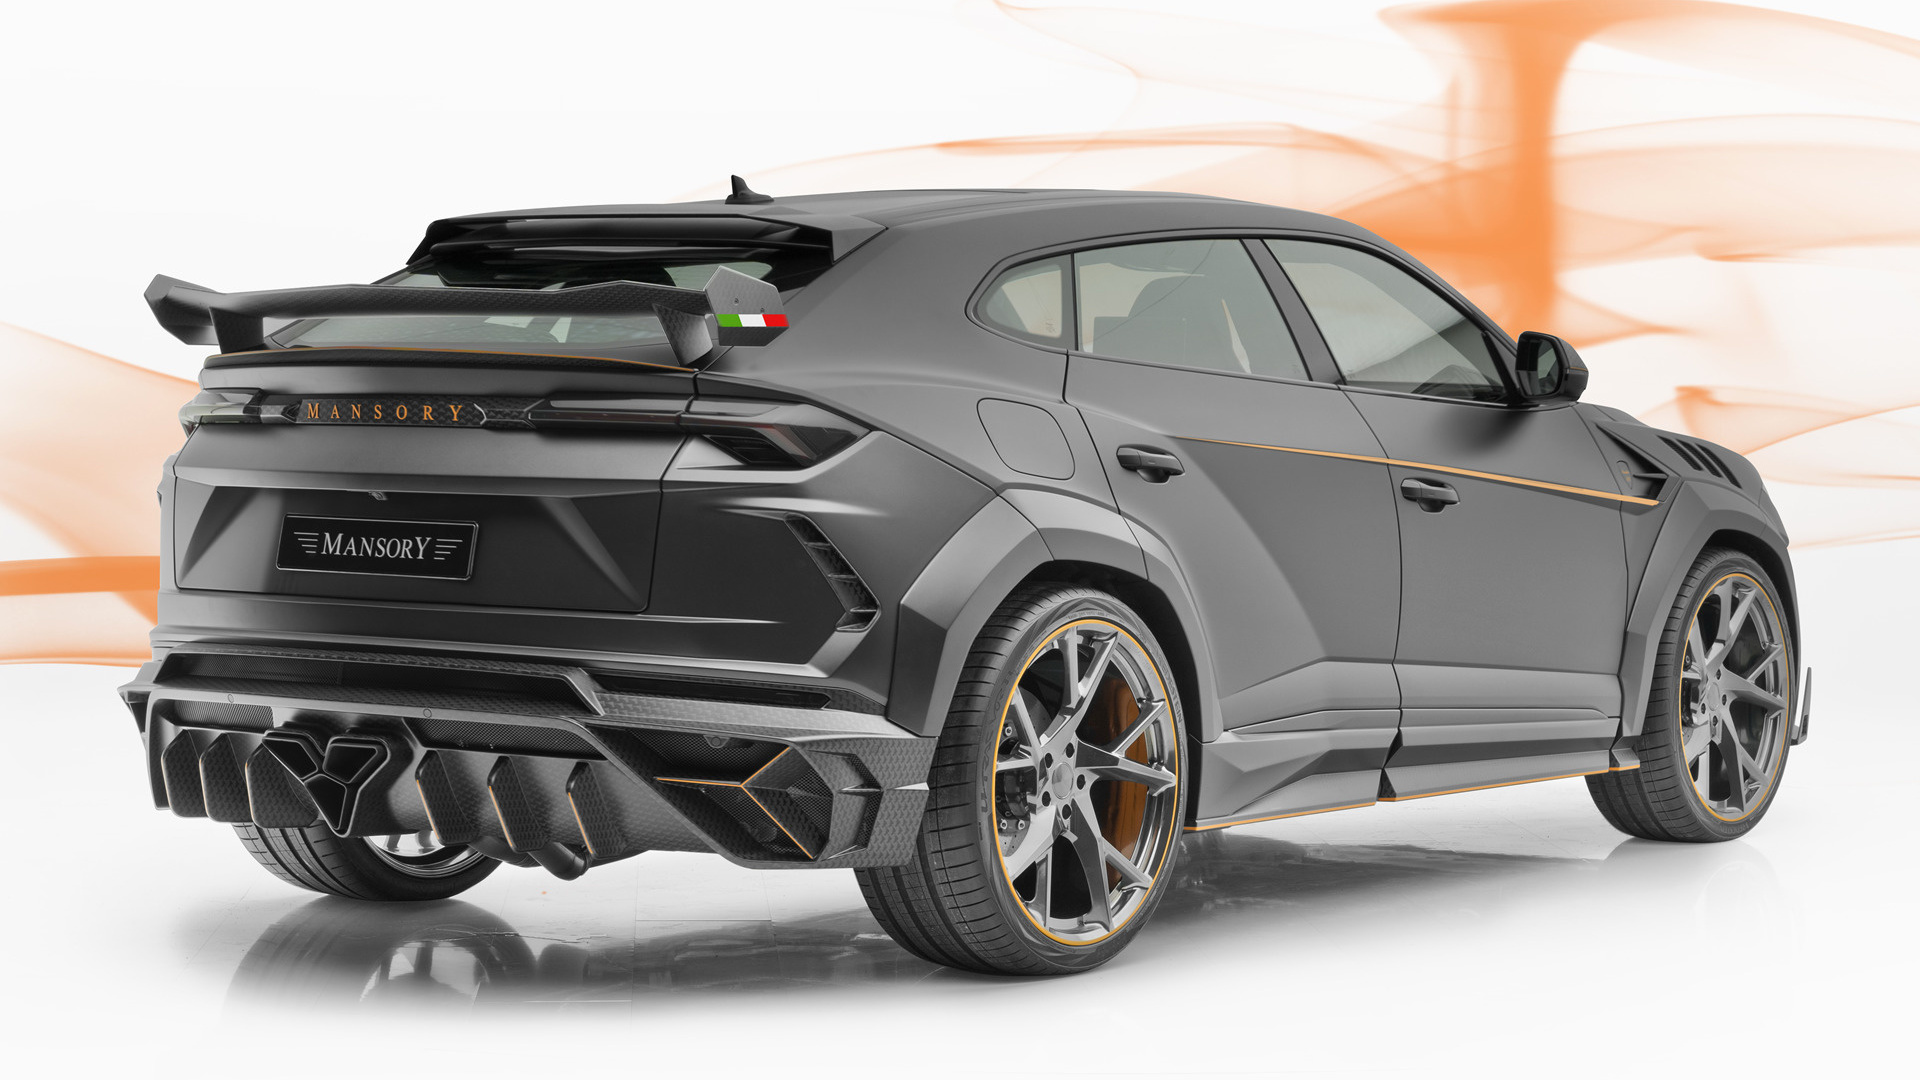 2019 Lamborghini Urus By Mansory Wallpapers And Hd Images Car Pixel